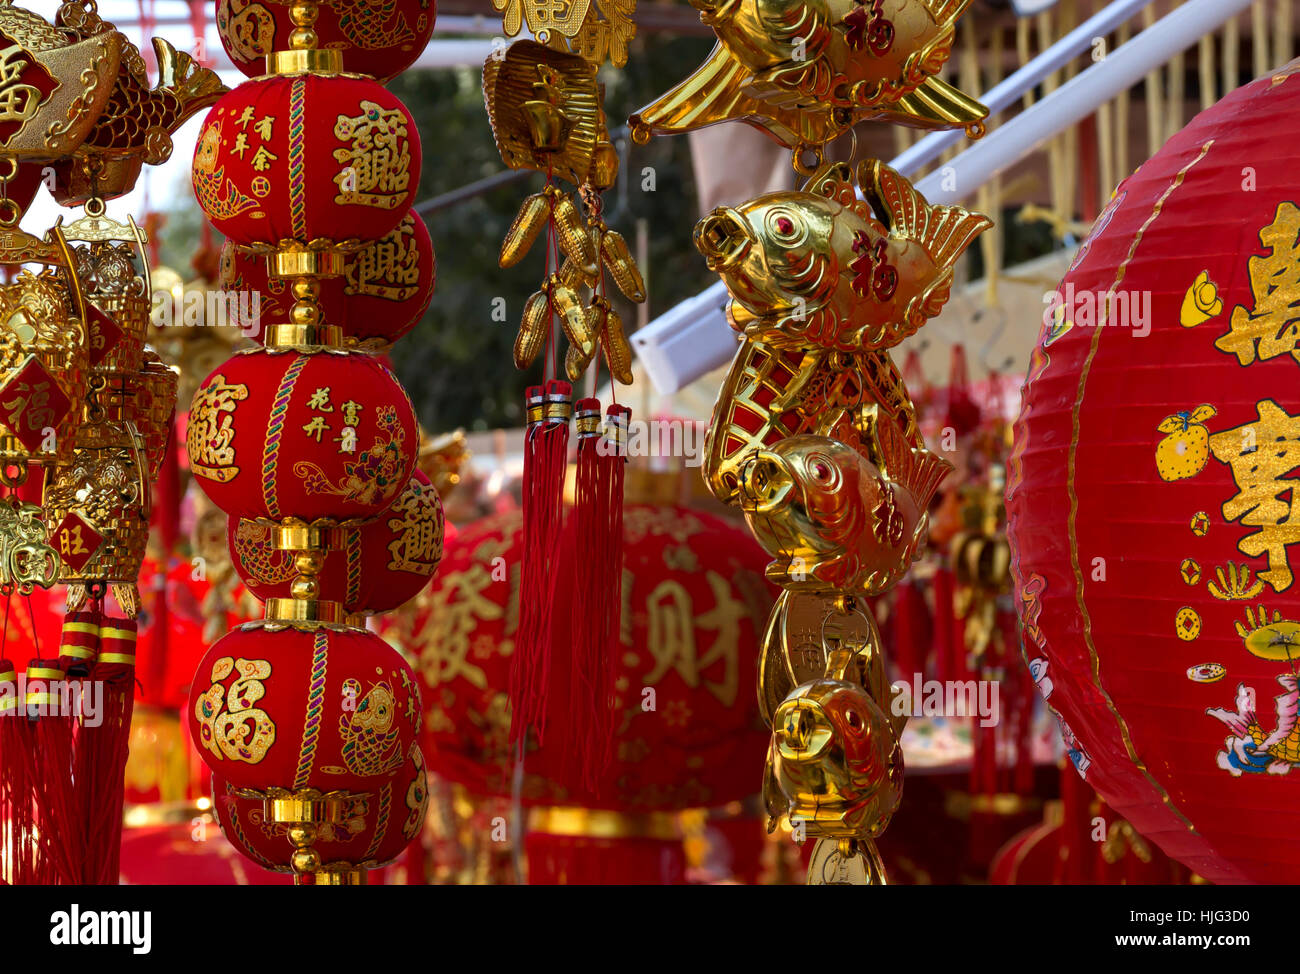 chinese traditional decor for lunar new year red paper lanterns